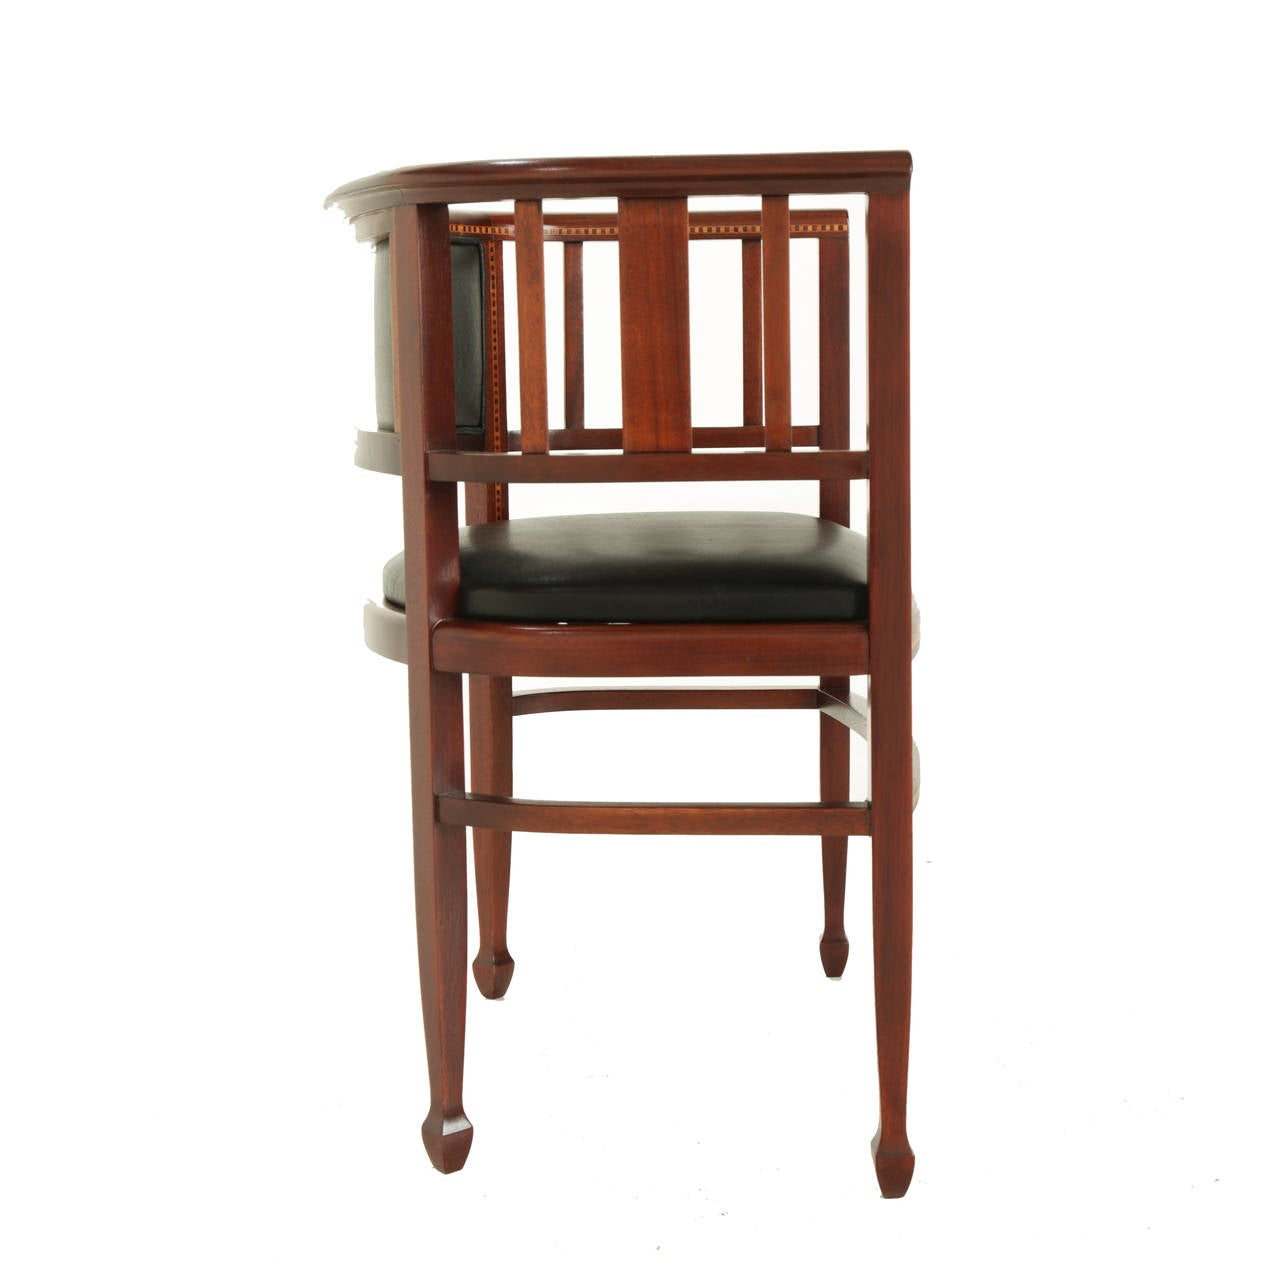 Exotic Wood Chairs ~ Brazilian exotic hardwood chair with sculpted feet and